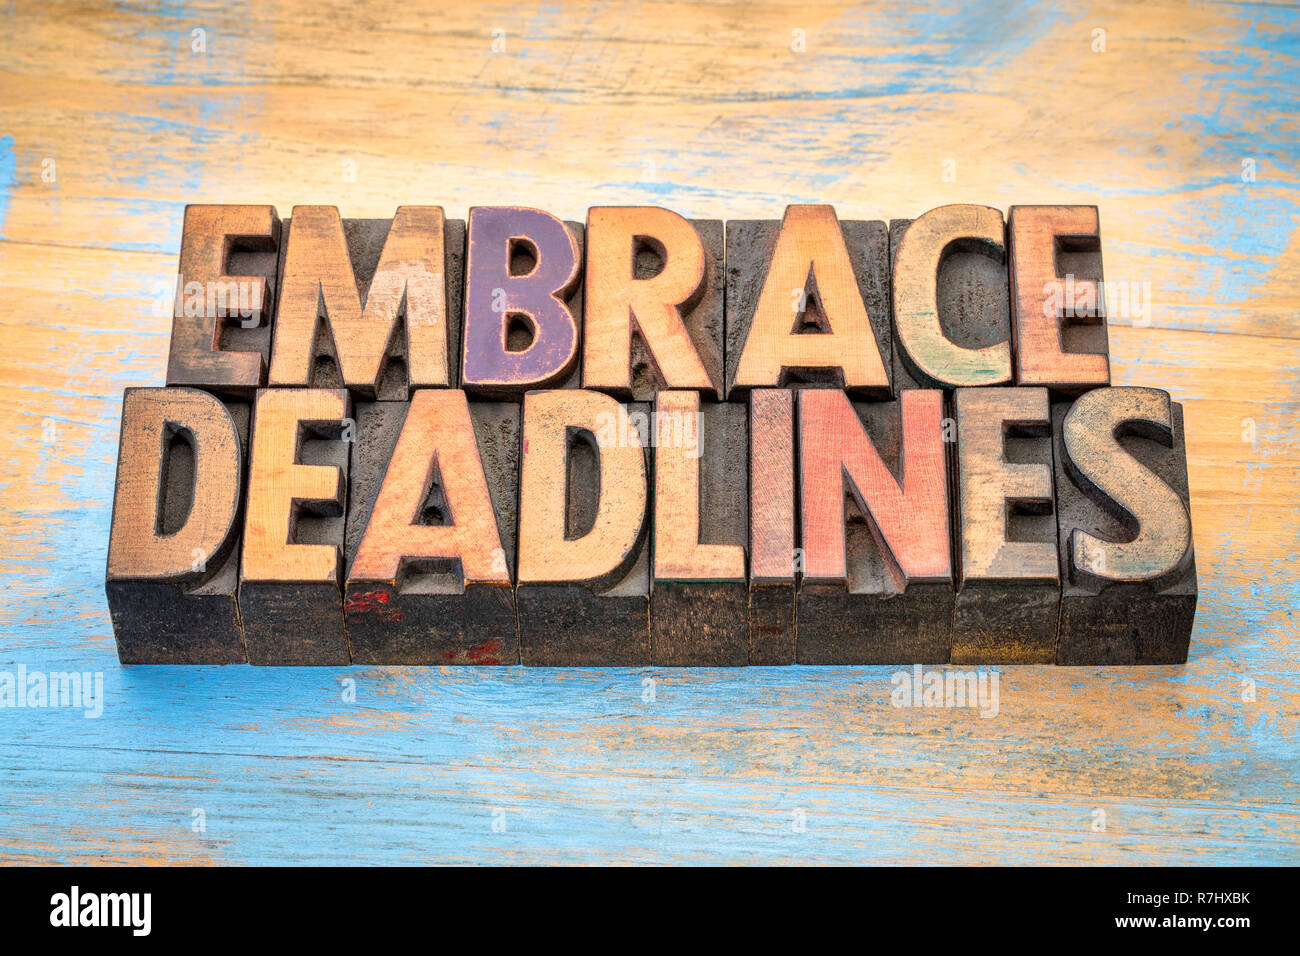 embrace deadlines - word abstract in vintage letterpress wood type blocks - Stock Image